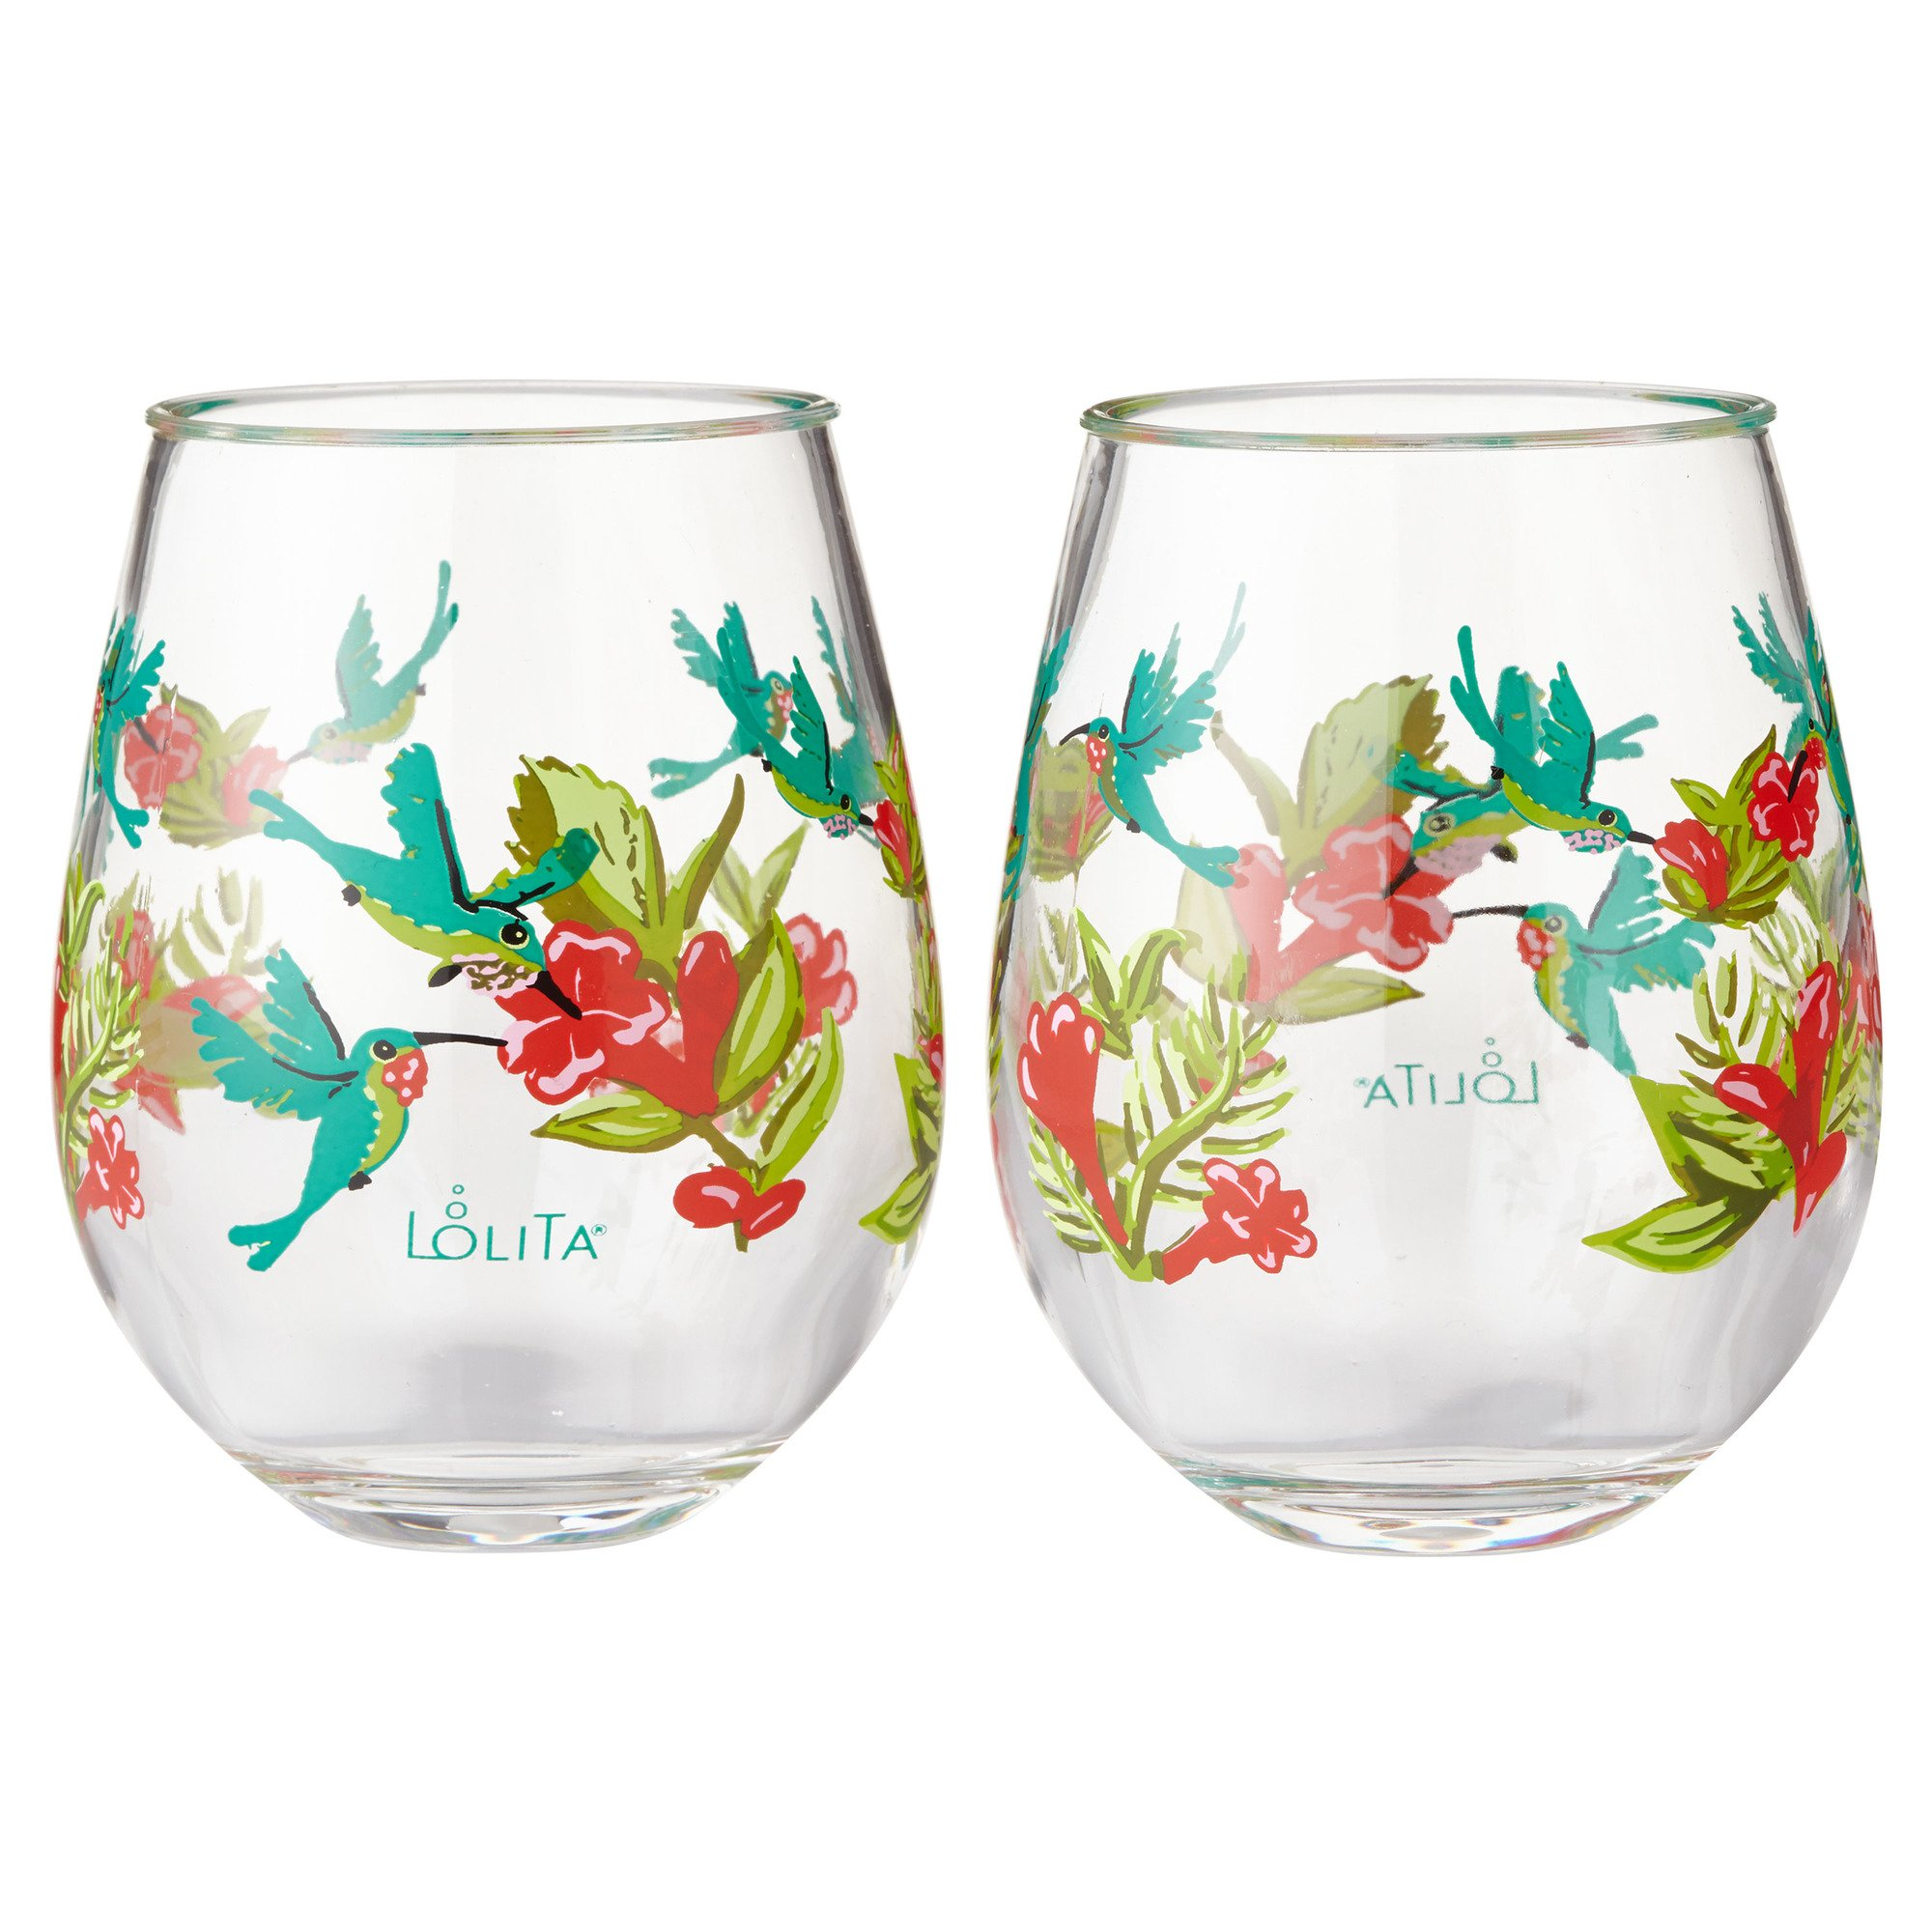 Enesco Designs by Lolita Hummingbird Acrylic Stemless Wine Glasses, Set of 2, 17 oz.